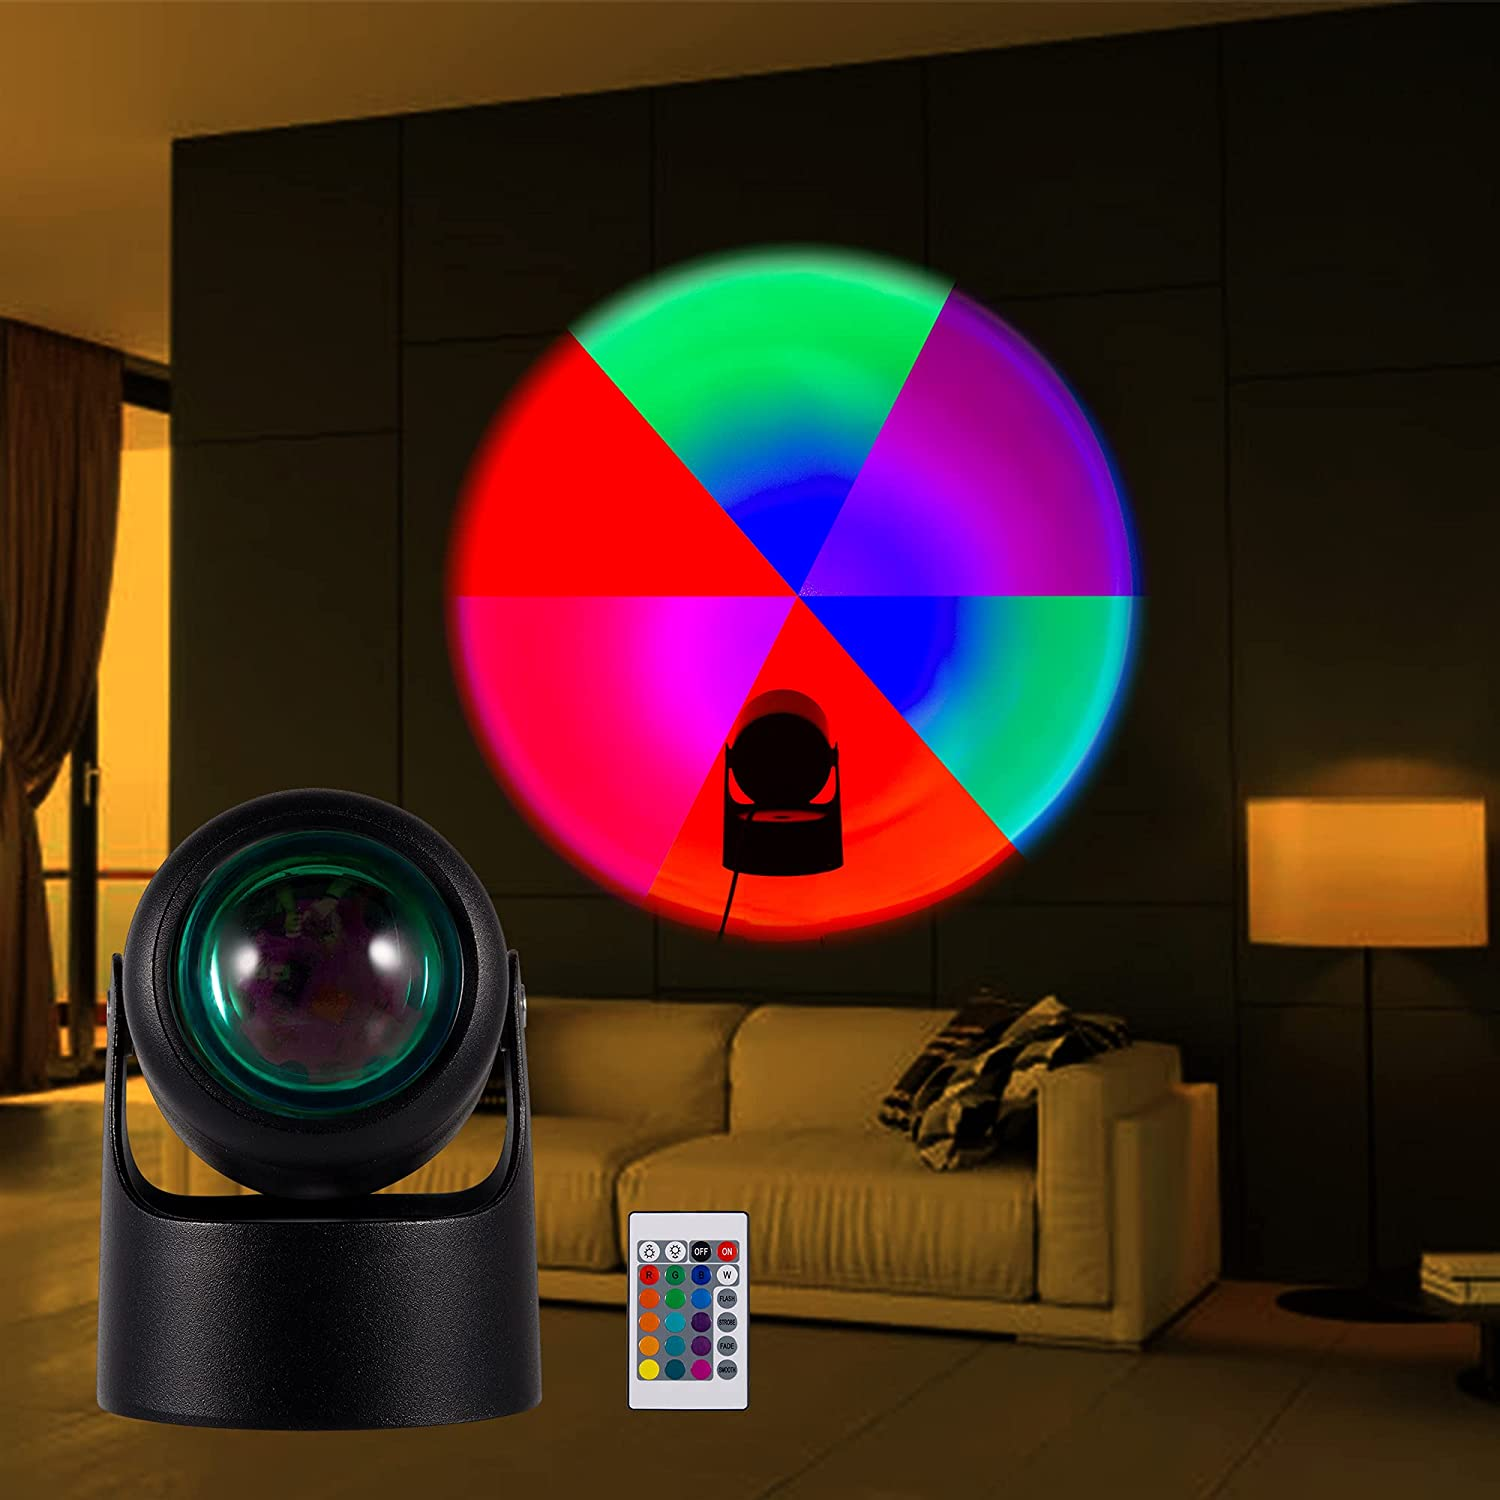 Sunset Lamp, RGB Sunset Projection Lamp, 16 in 1 Sunset Lamp Projector with Remote Control for Kid Baby Teen Adult, Perfect Sunset Night Light Projector for Home Decor/Photography/YouTube(Multicolor)